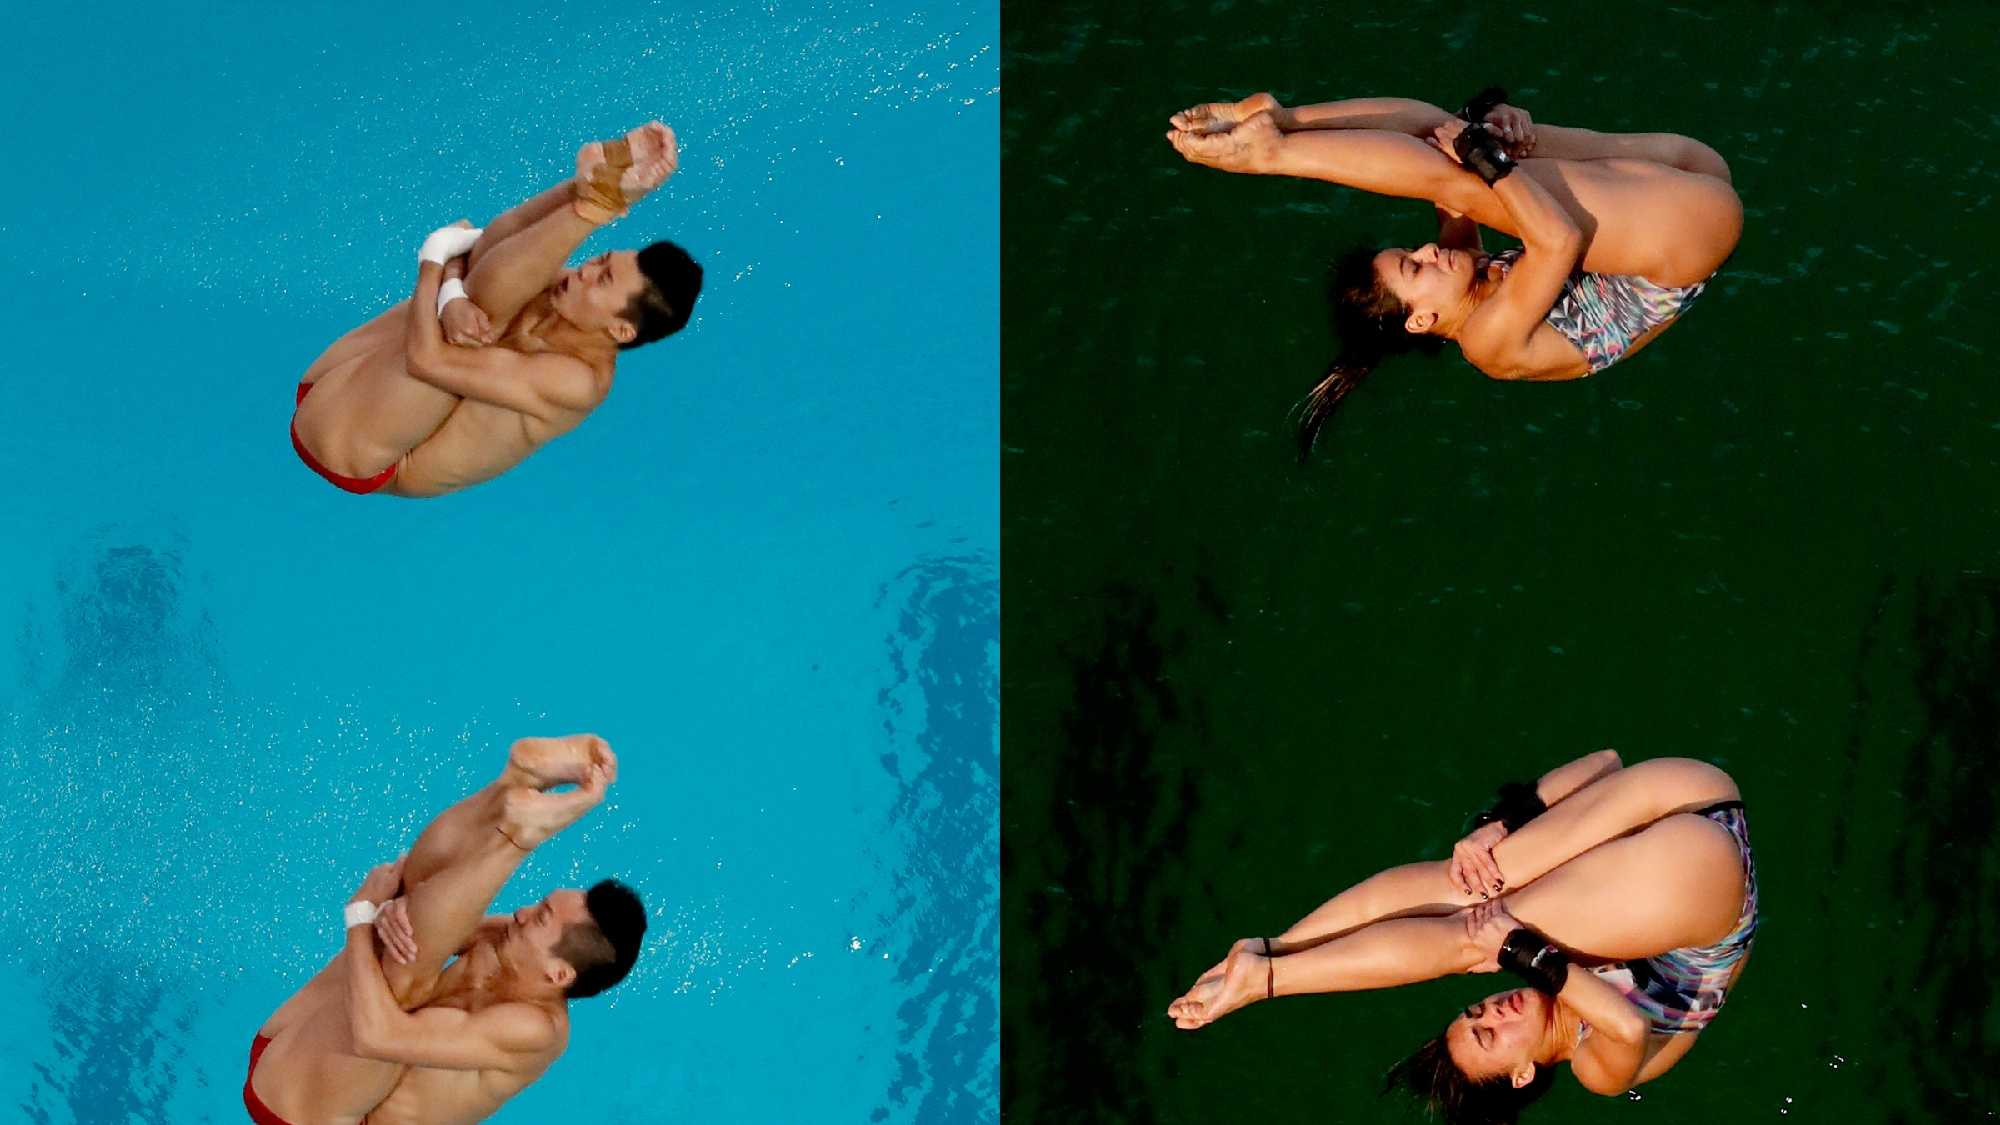 In this combination of file photos, China's Lin Yue, bottom left, and Chen Aisen compete during the men's synchronized 10-meter platform diving final on Monday, Aug. 8, 2016, and Brazil's Ingrid Oliveira and Giovanna Pedroso, at right, compete during the women's synchronized 10-meter platform diving final on Tuesday, Aug. 9, in the Maria Lenk Aquatic Center at the 2016 Summer Olympics in Rio de Janeiro, Brazil. The water at the Maria Lenk Aquatic Center was greener Tuesday during the women's synchronized diving competition 10-meter platform final than one day earlier during the men's competition. Venue managers did not immediately comment on the water.